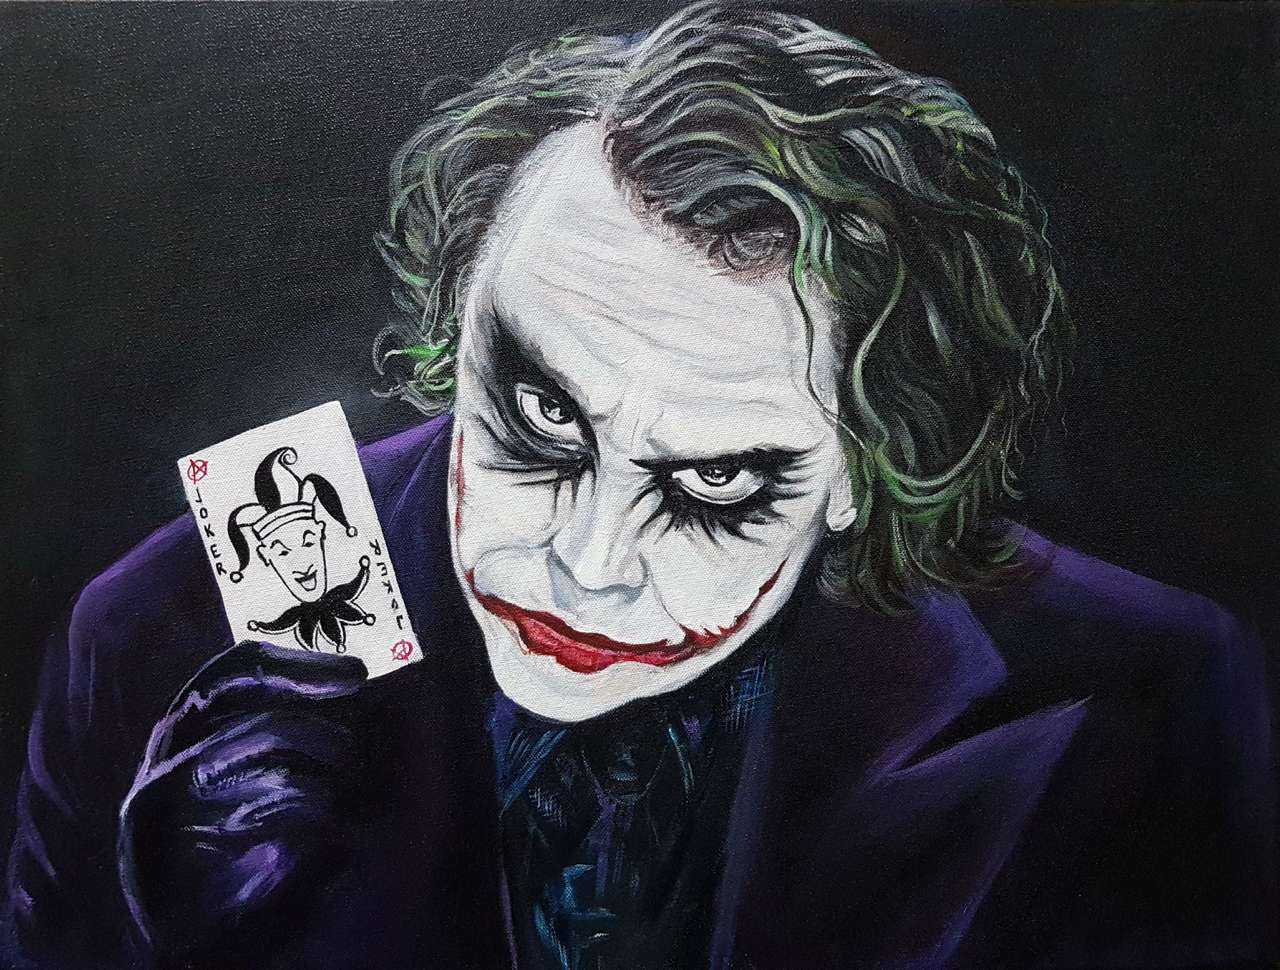 Joker- Dark Knight Handmade Painting Pooja Lalwani. Code Art 3416 23076 - Paintings